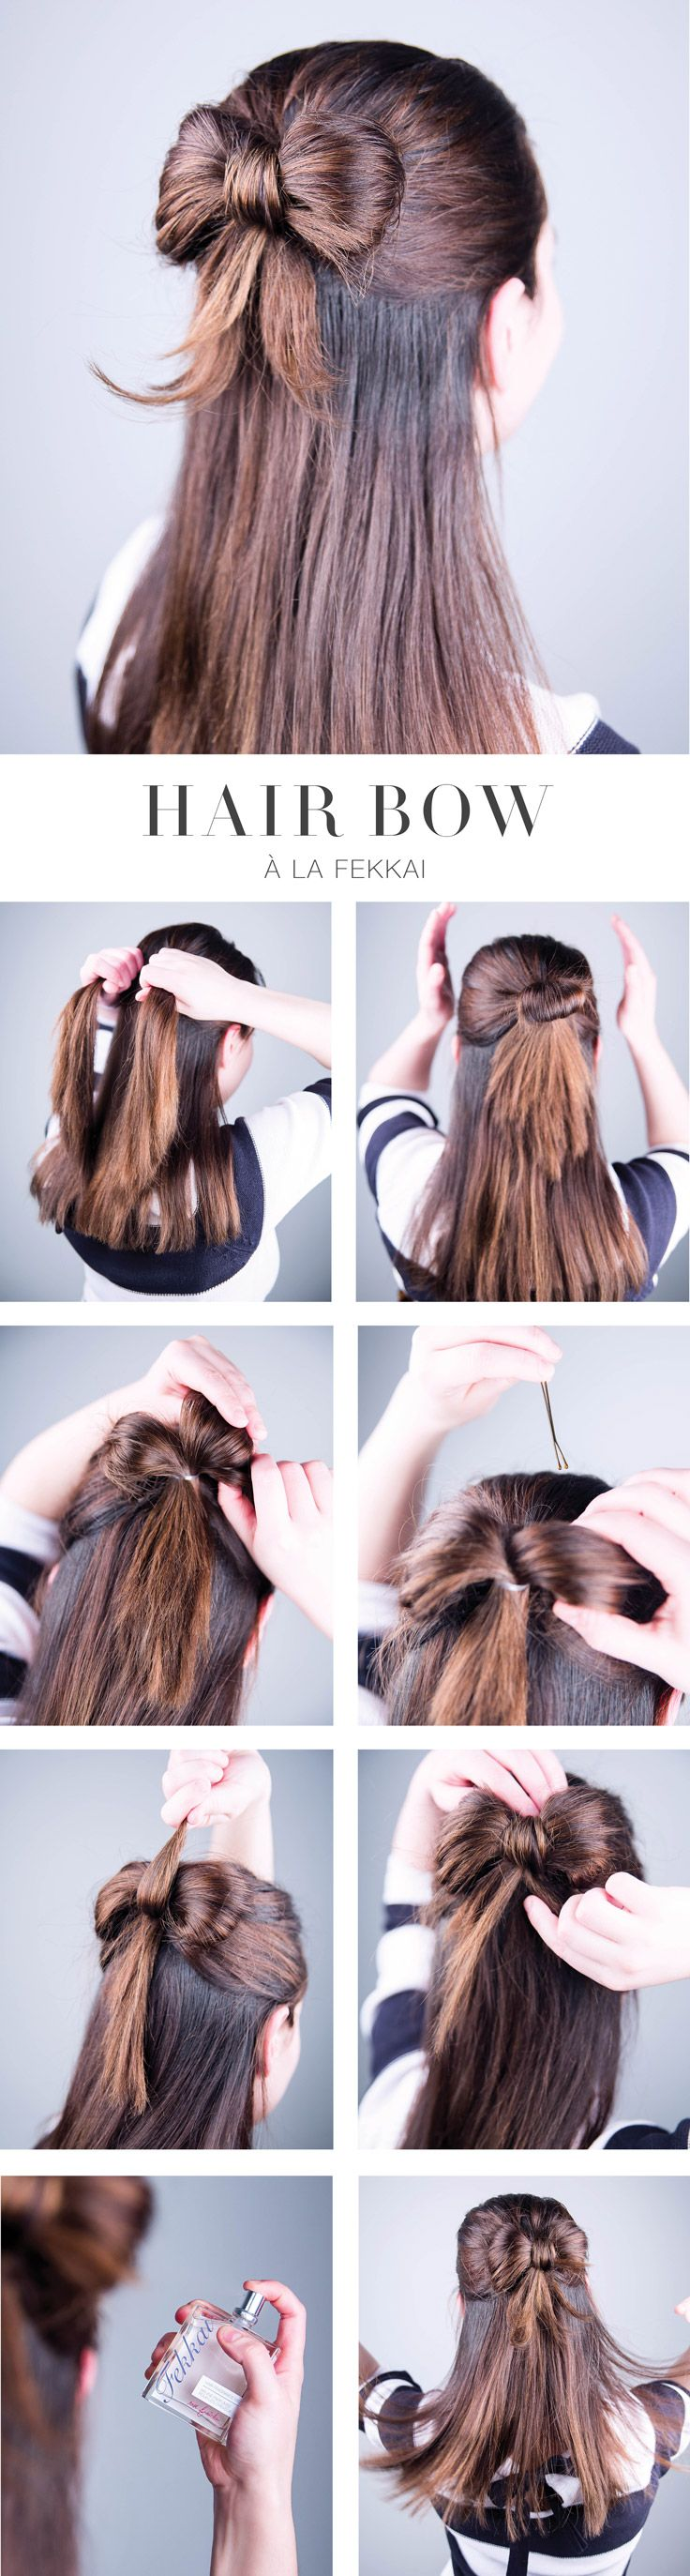 109 best Hairstyles images on Pinterest